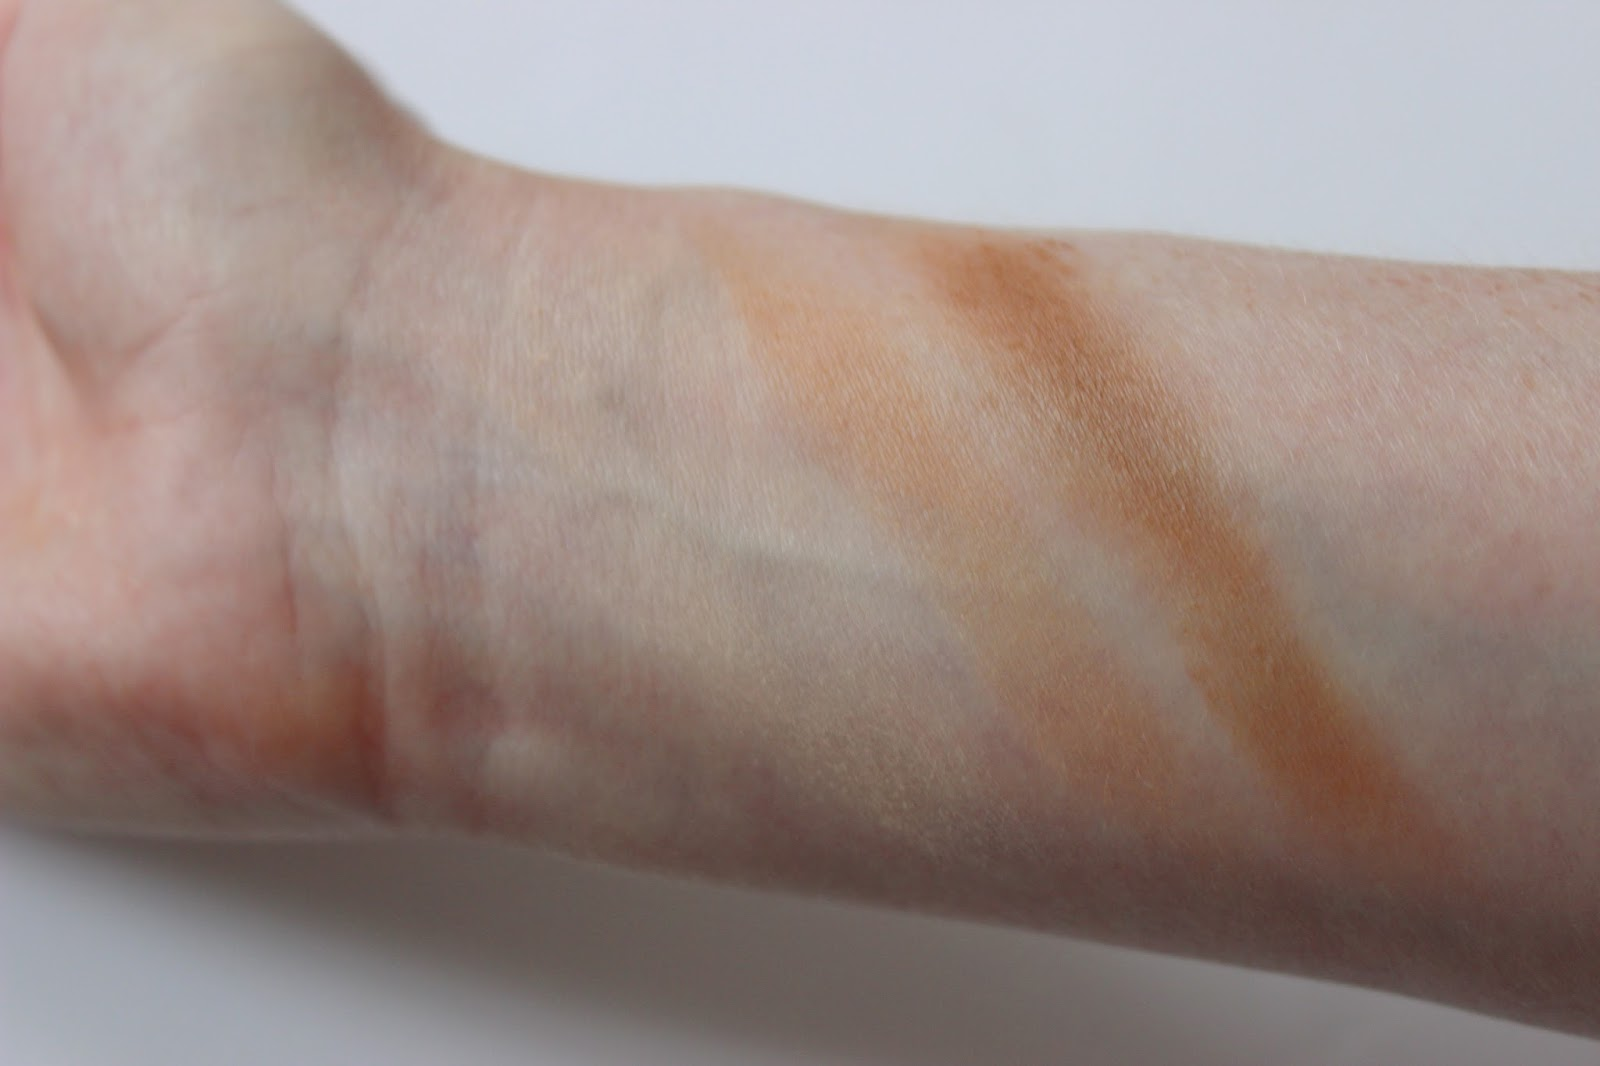 Too Faced cocoa powder foundation and soleil chocolate bronzer swatches